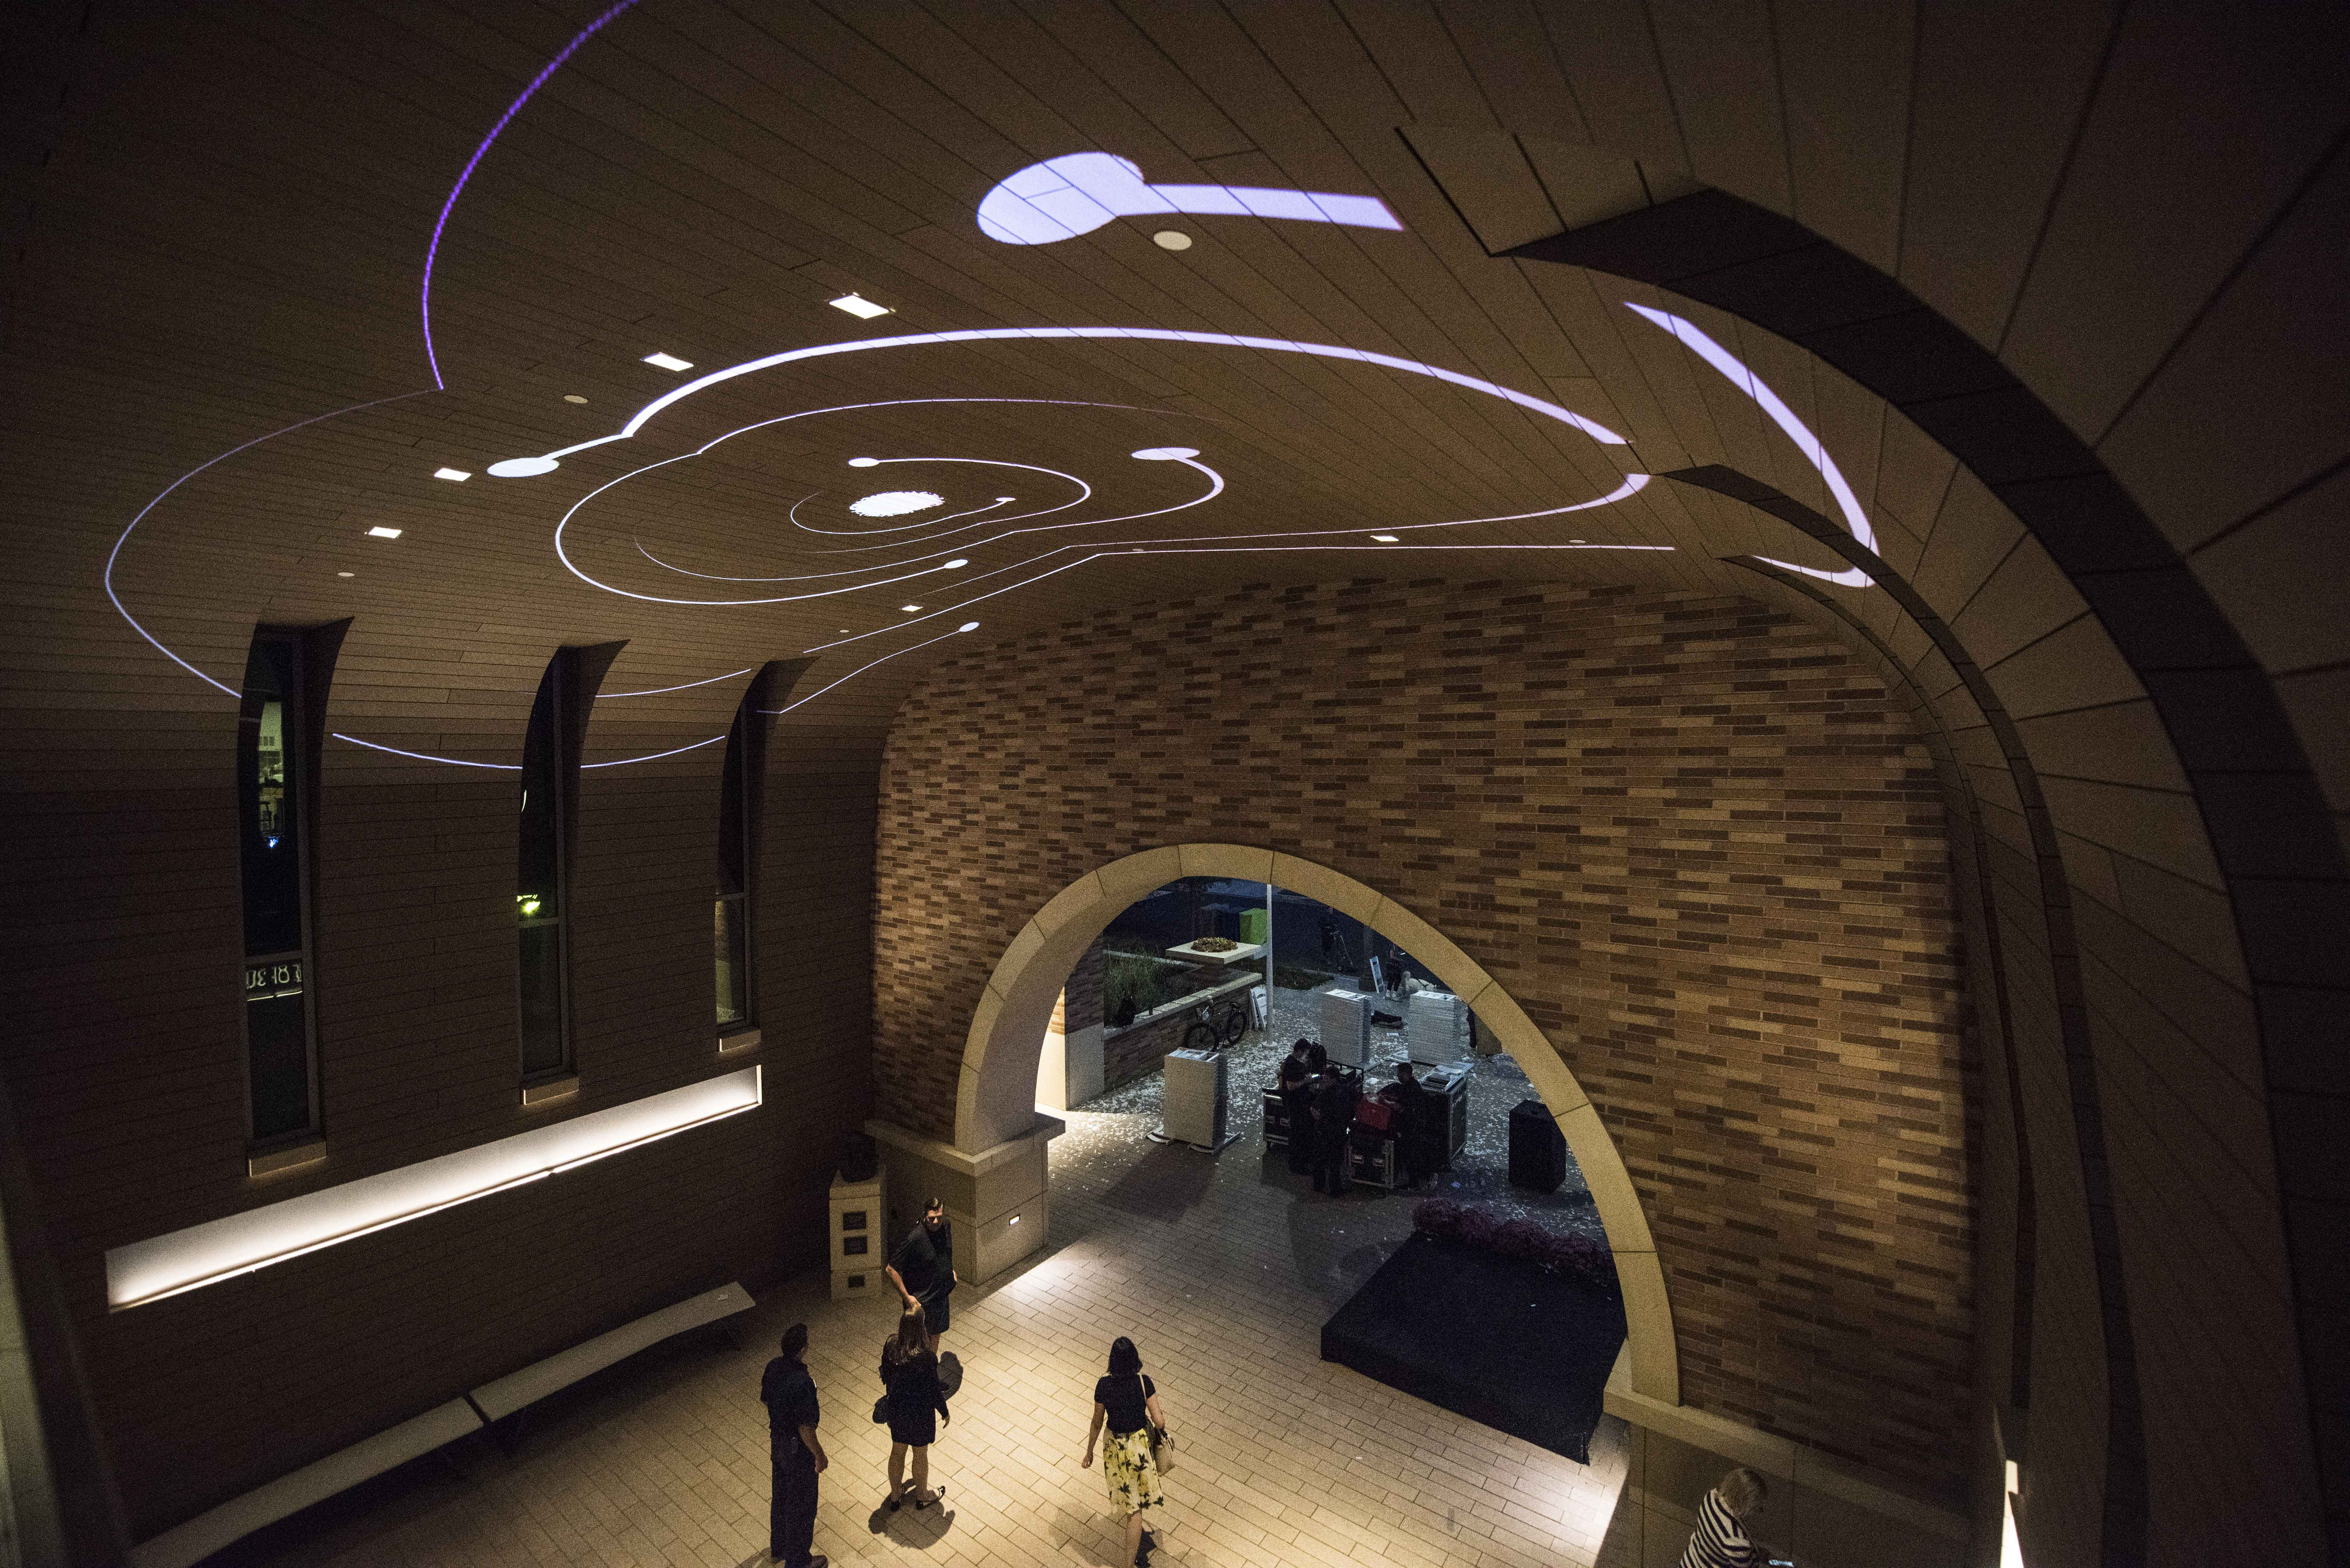 he vaulted ceiling at Keck Center comes to life at night with science-themed projections.